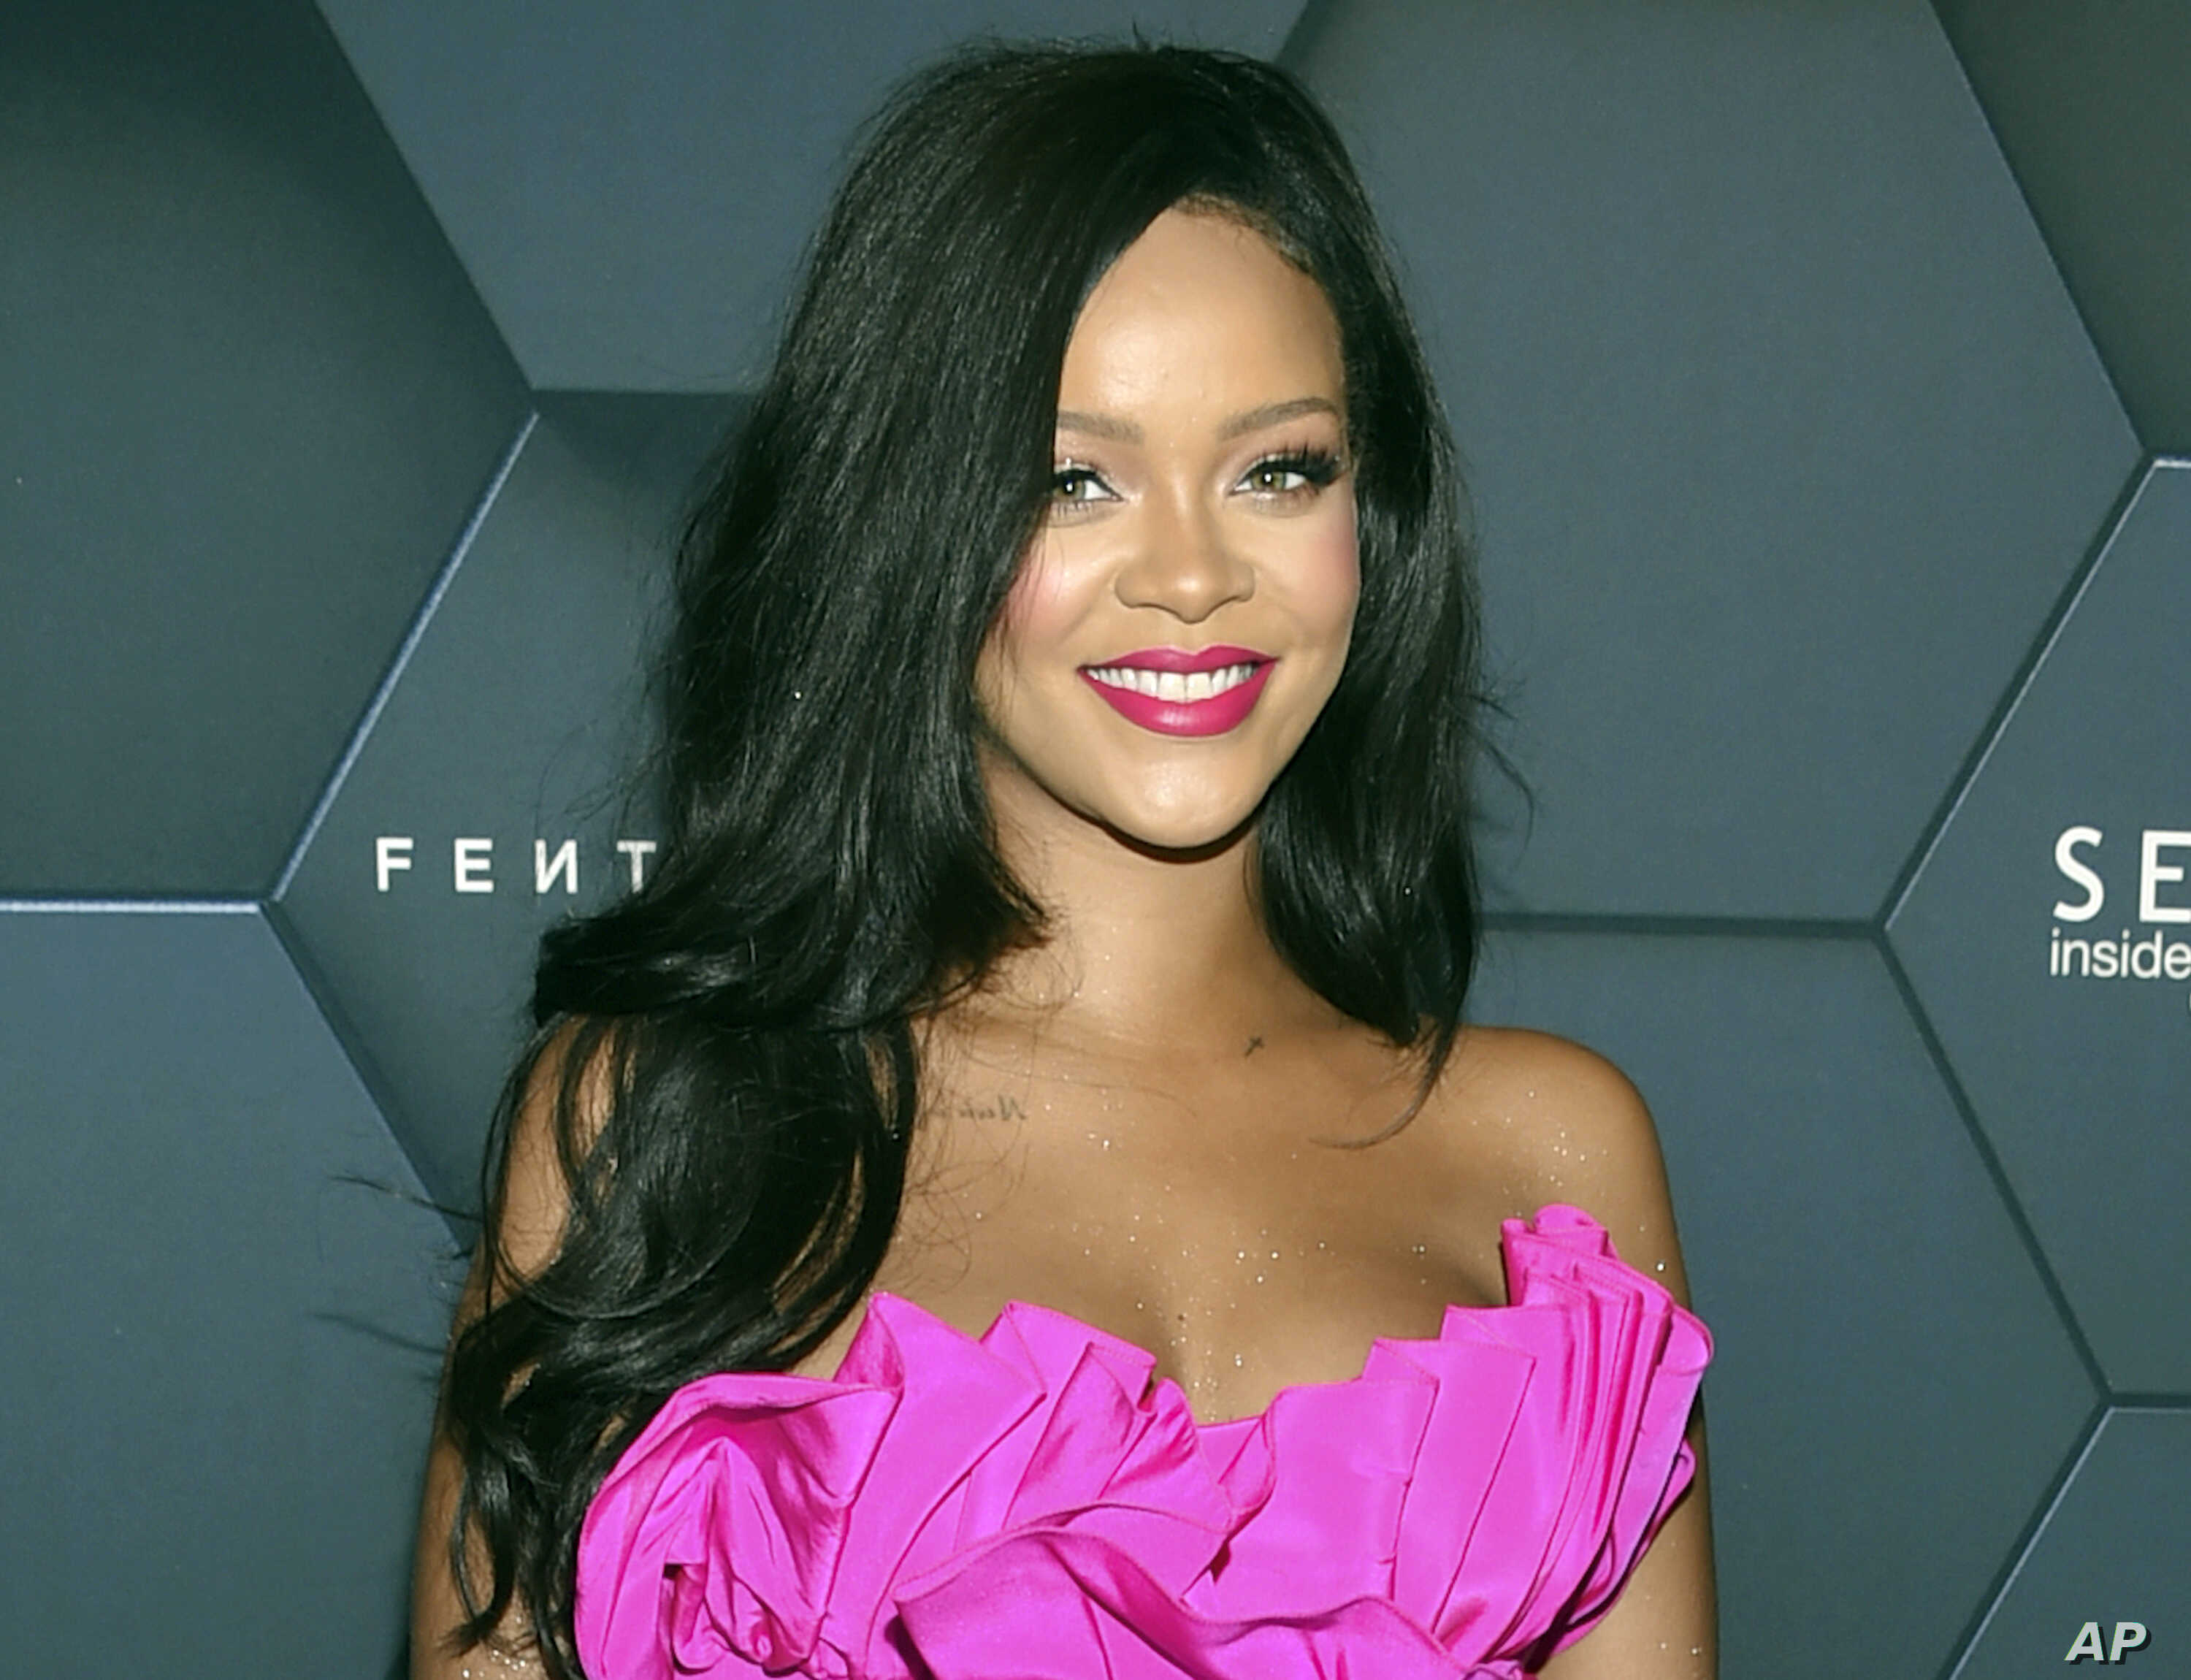 Luxury Group LVMH Teams Up with Rihanna for New Fashion Brand